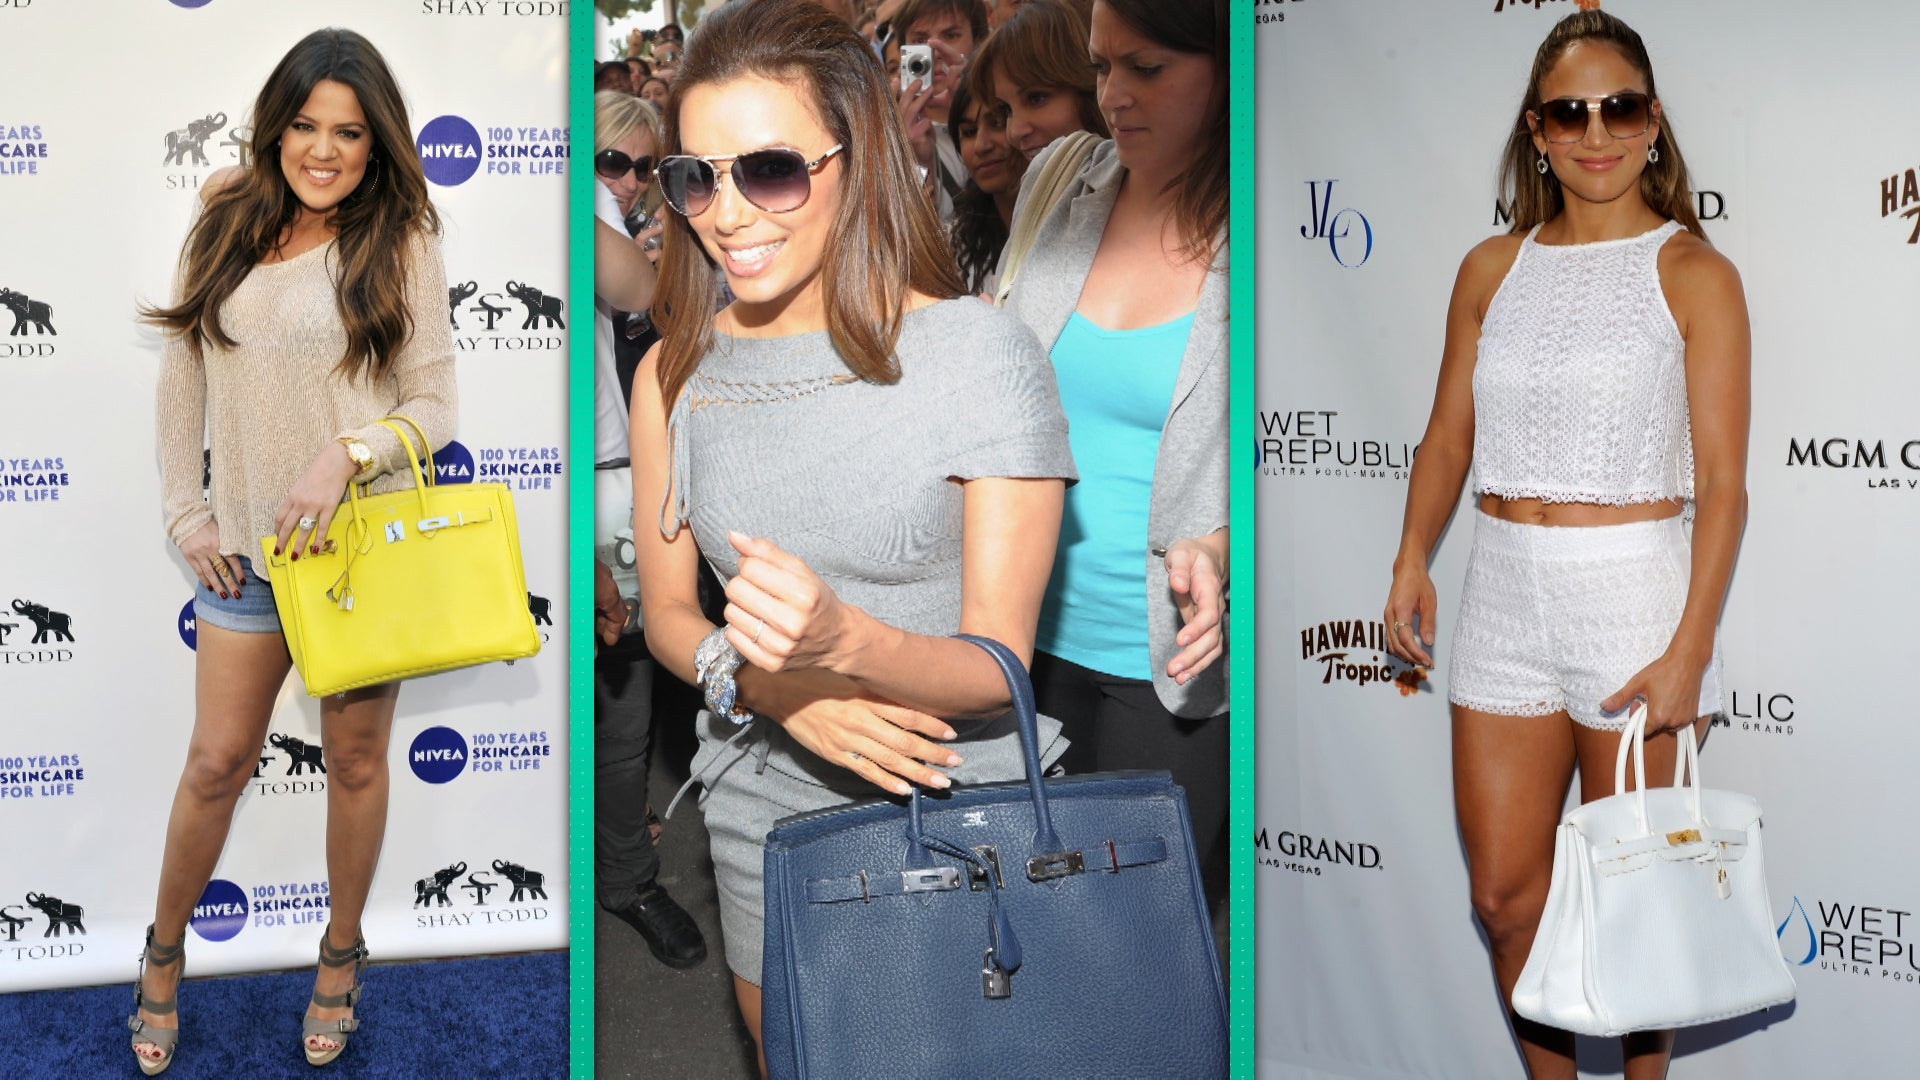 bf95b69ef3ce Celebrity Designer Handbags: Don't Get Caught With a Knockoff ...